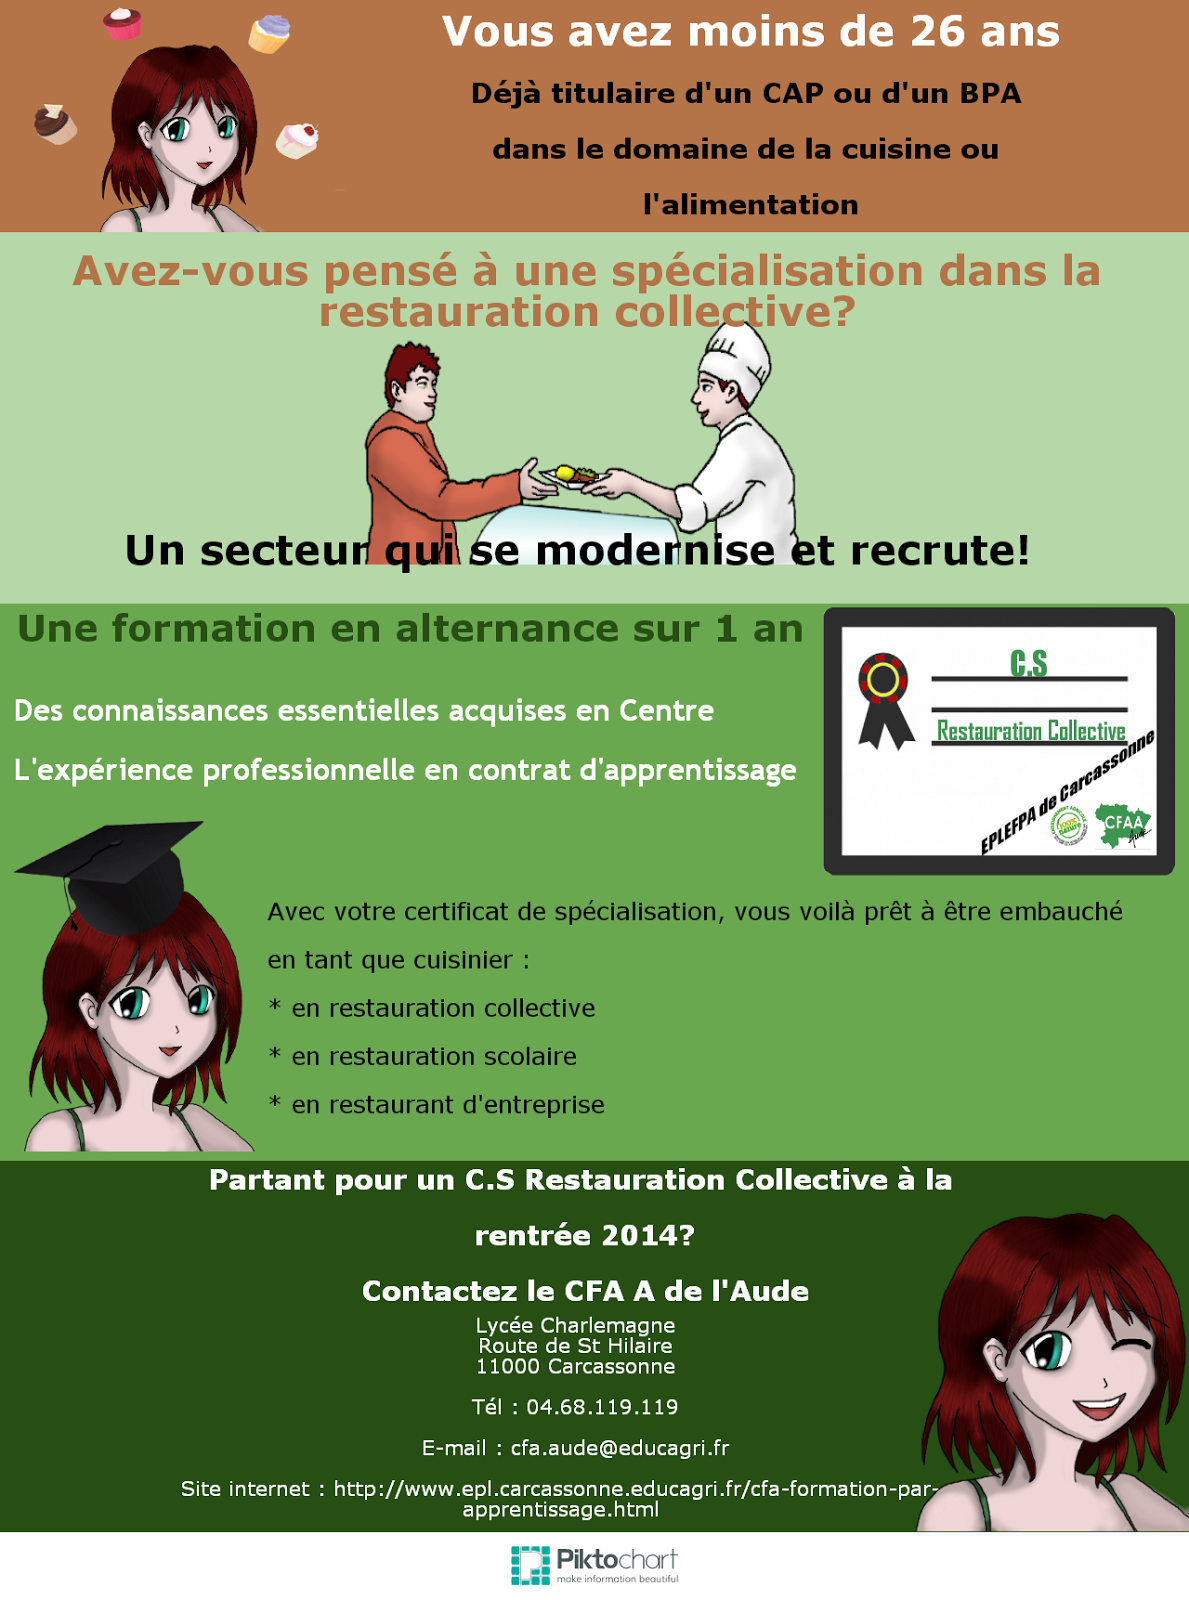 Cfa agricole de l 39 aude restauration collective for Alternance restauration collective